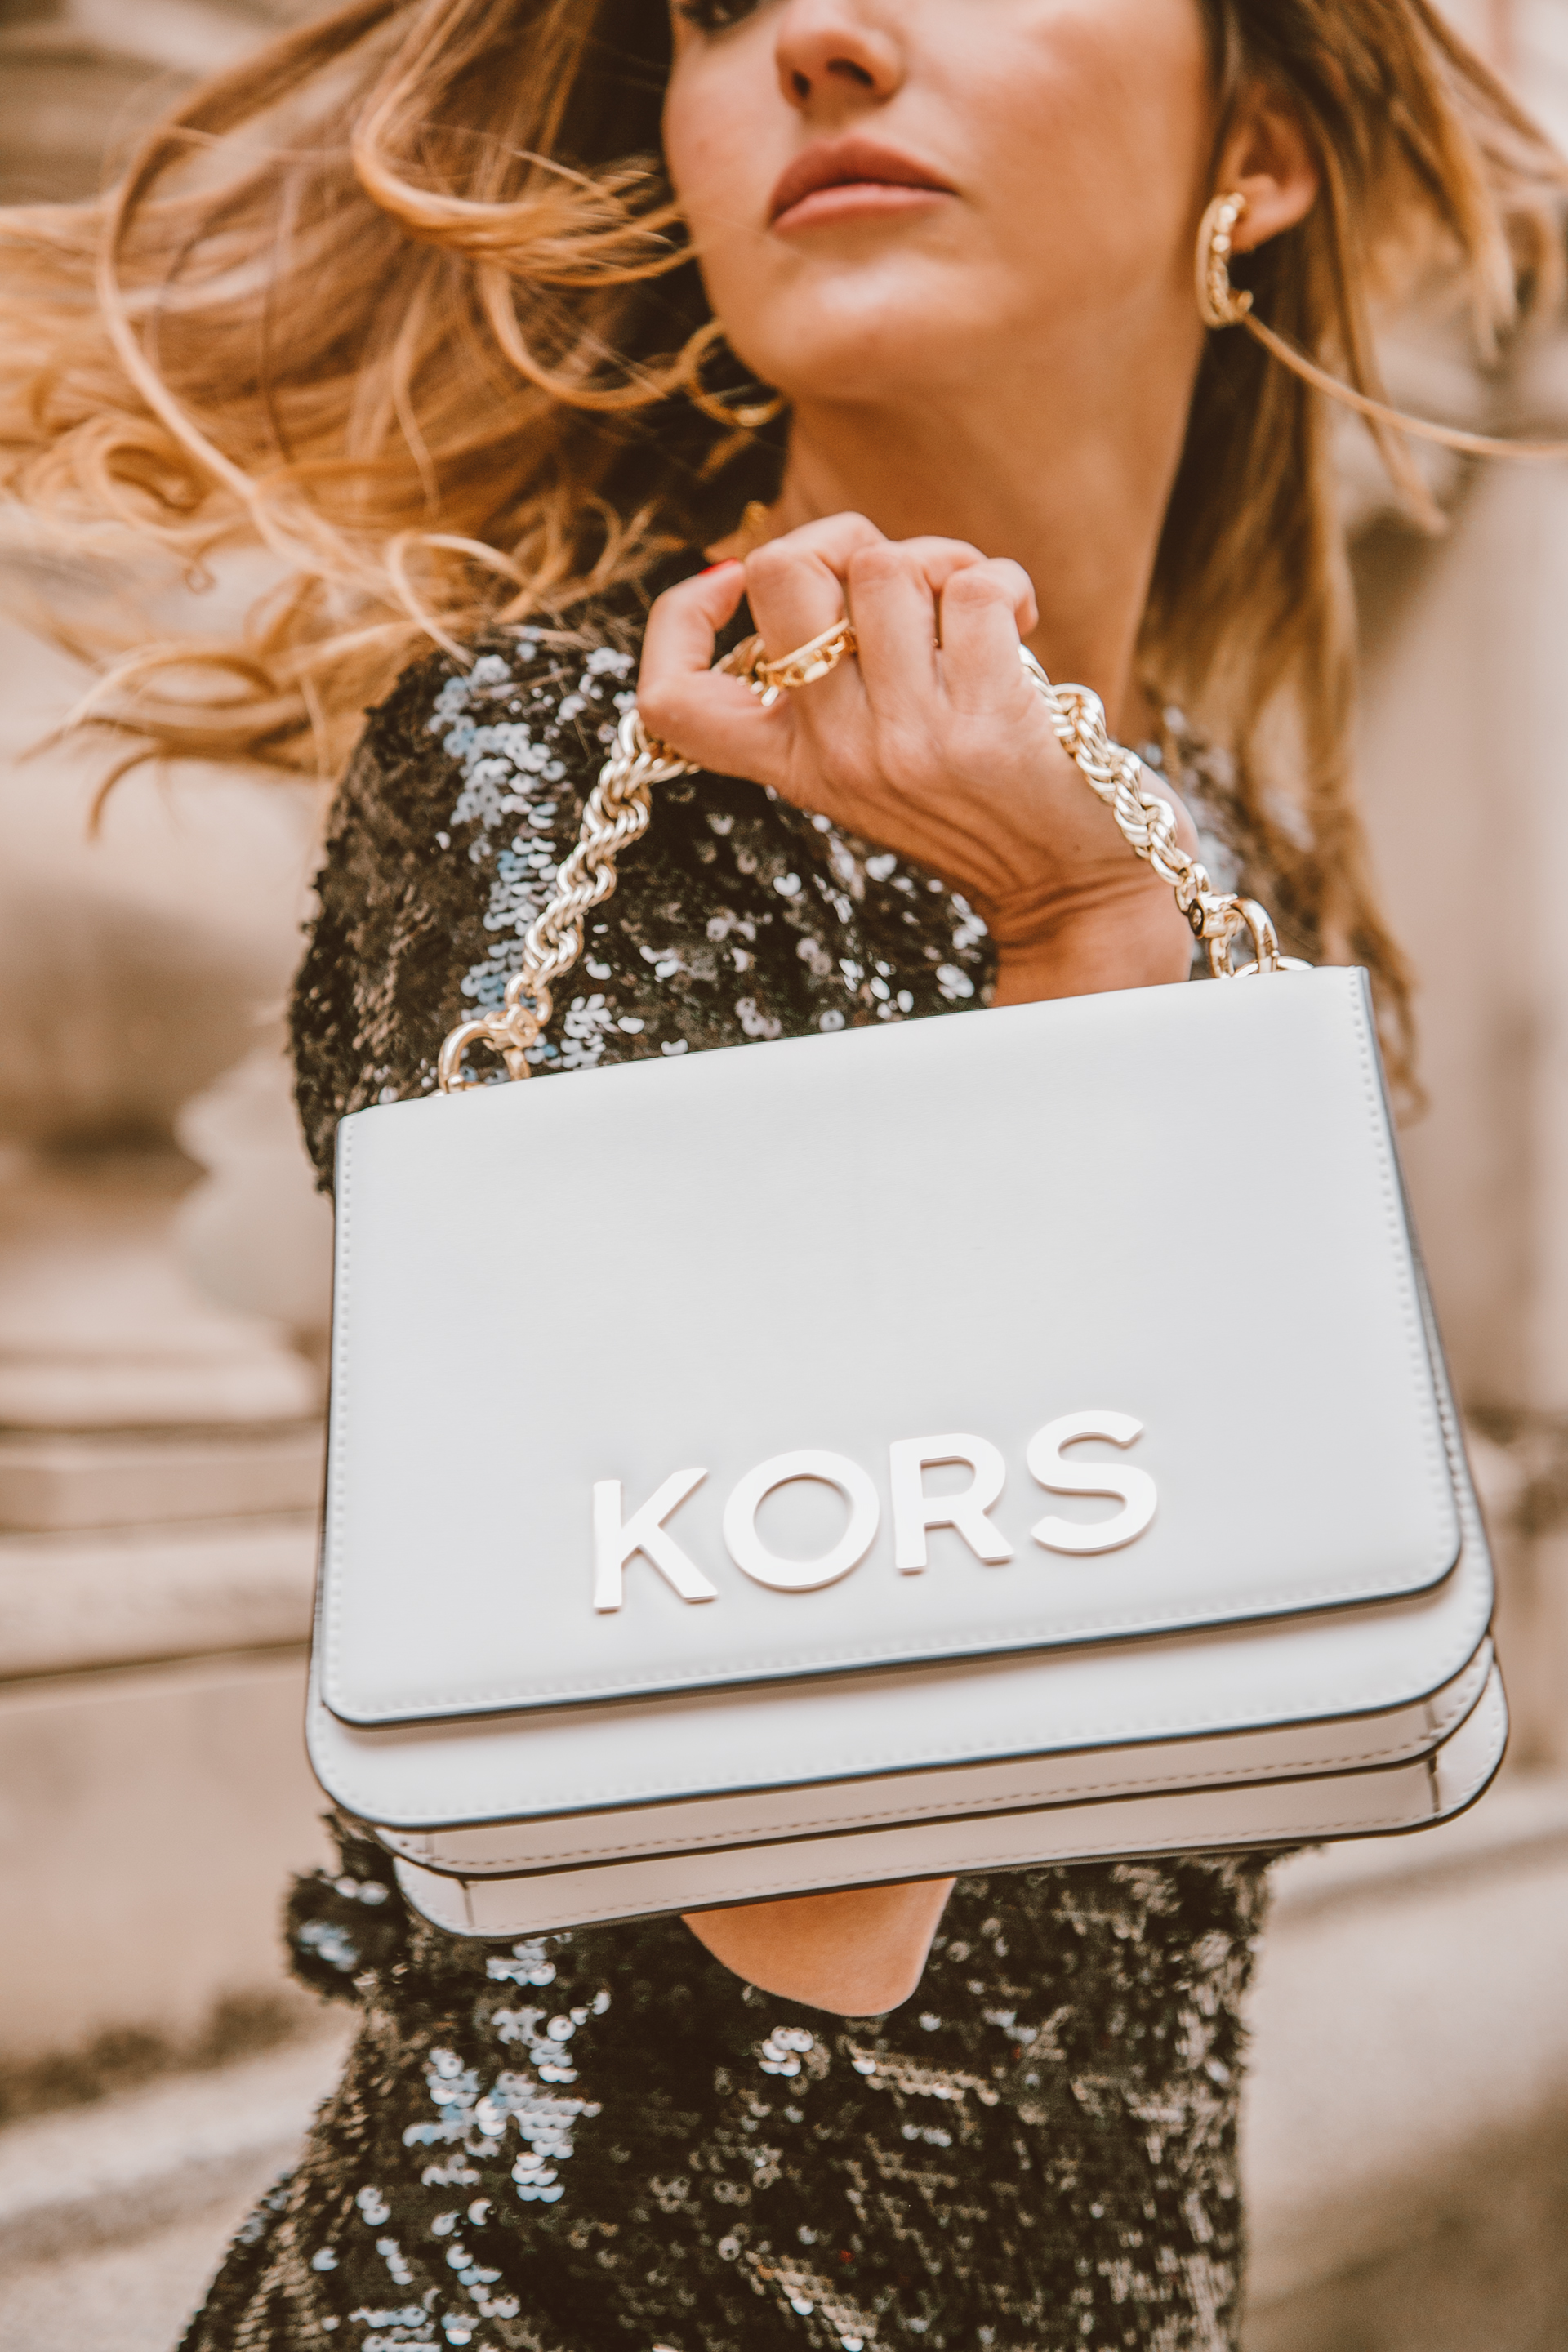 MICHAEL KORS-54 copia